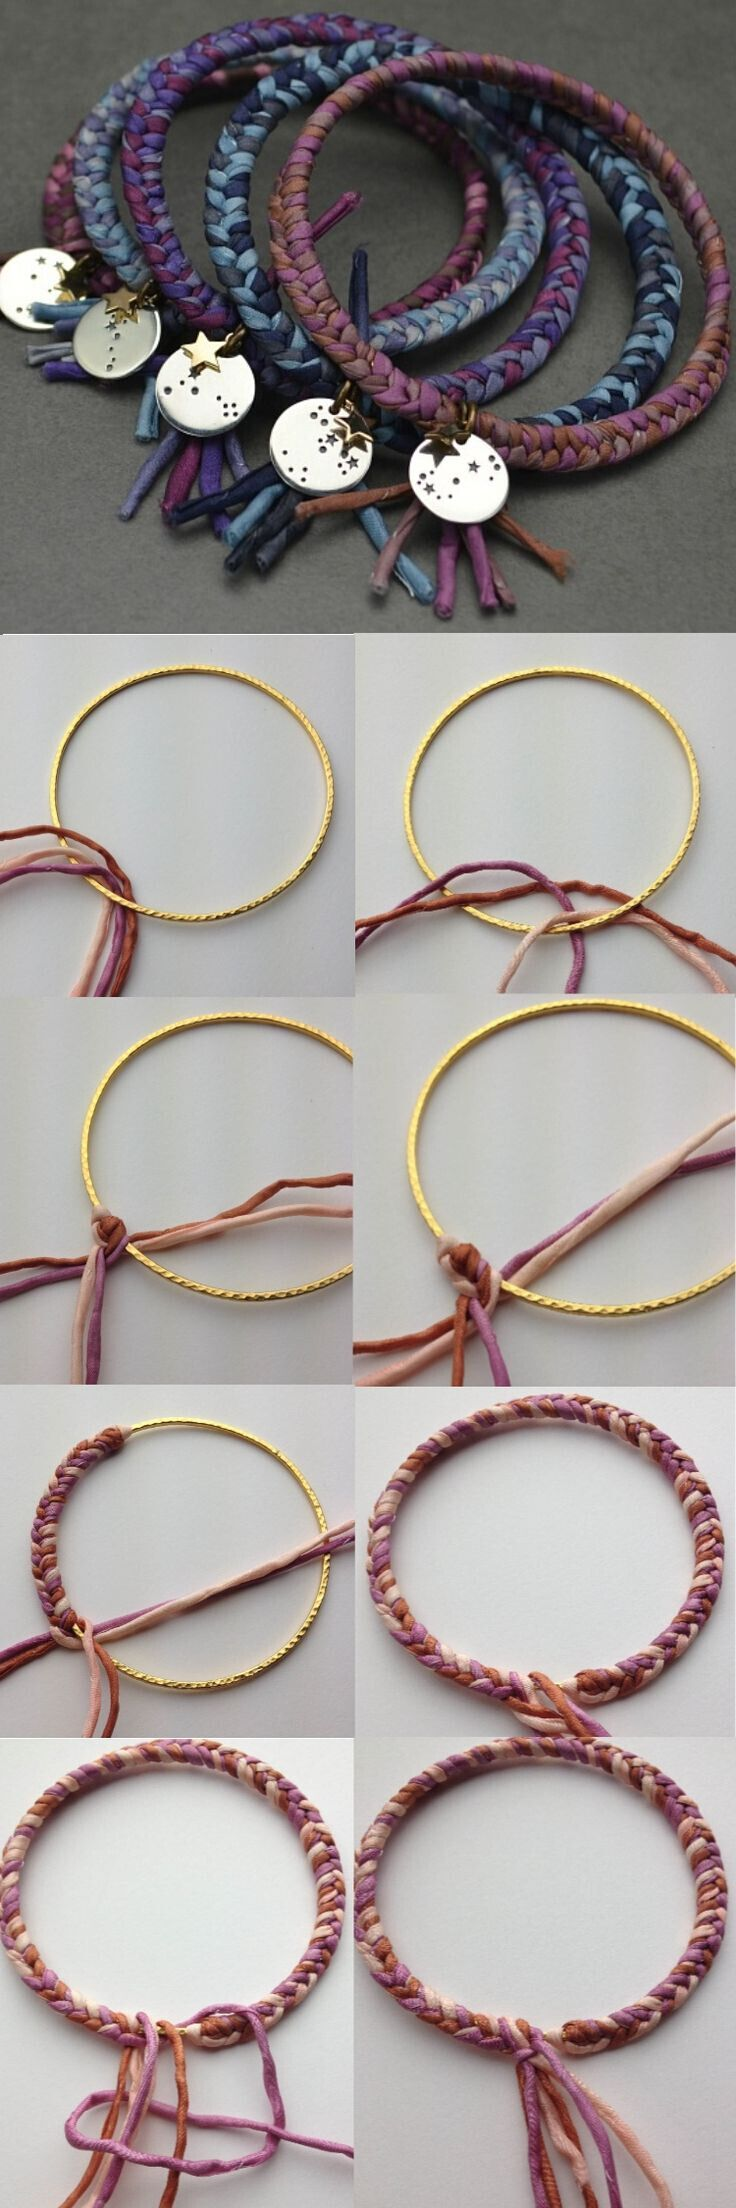 Braided Bangles Tutorial